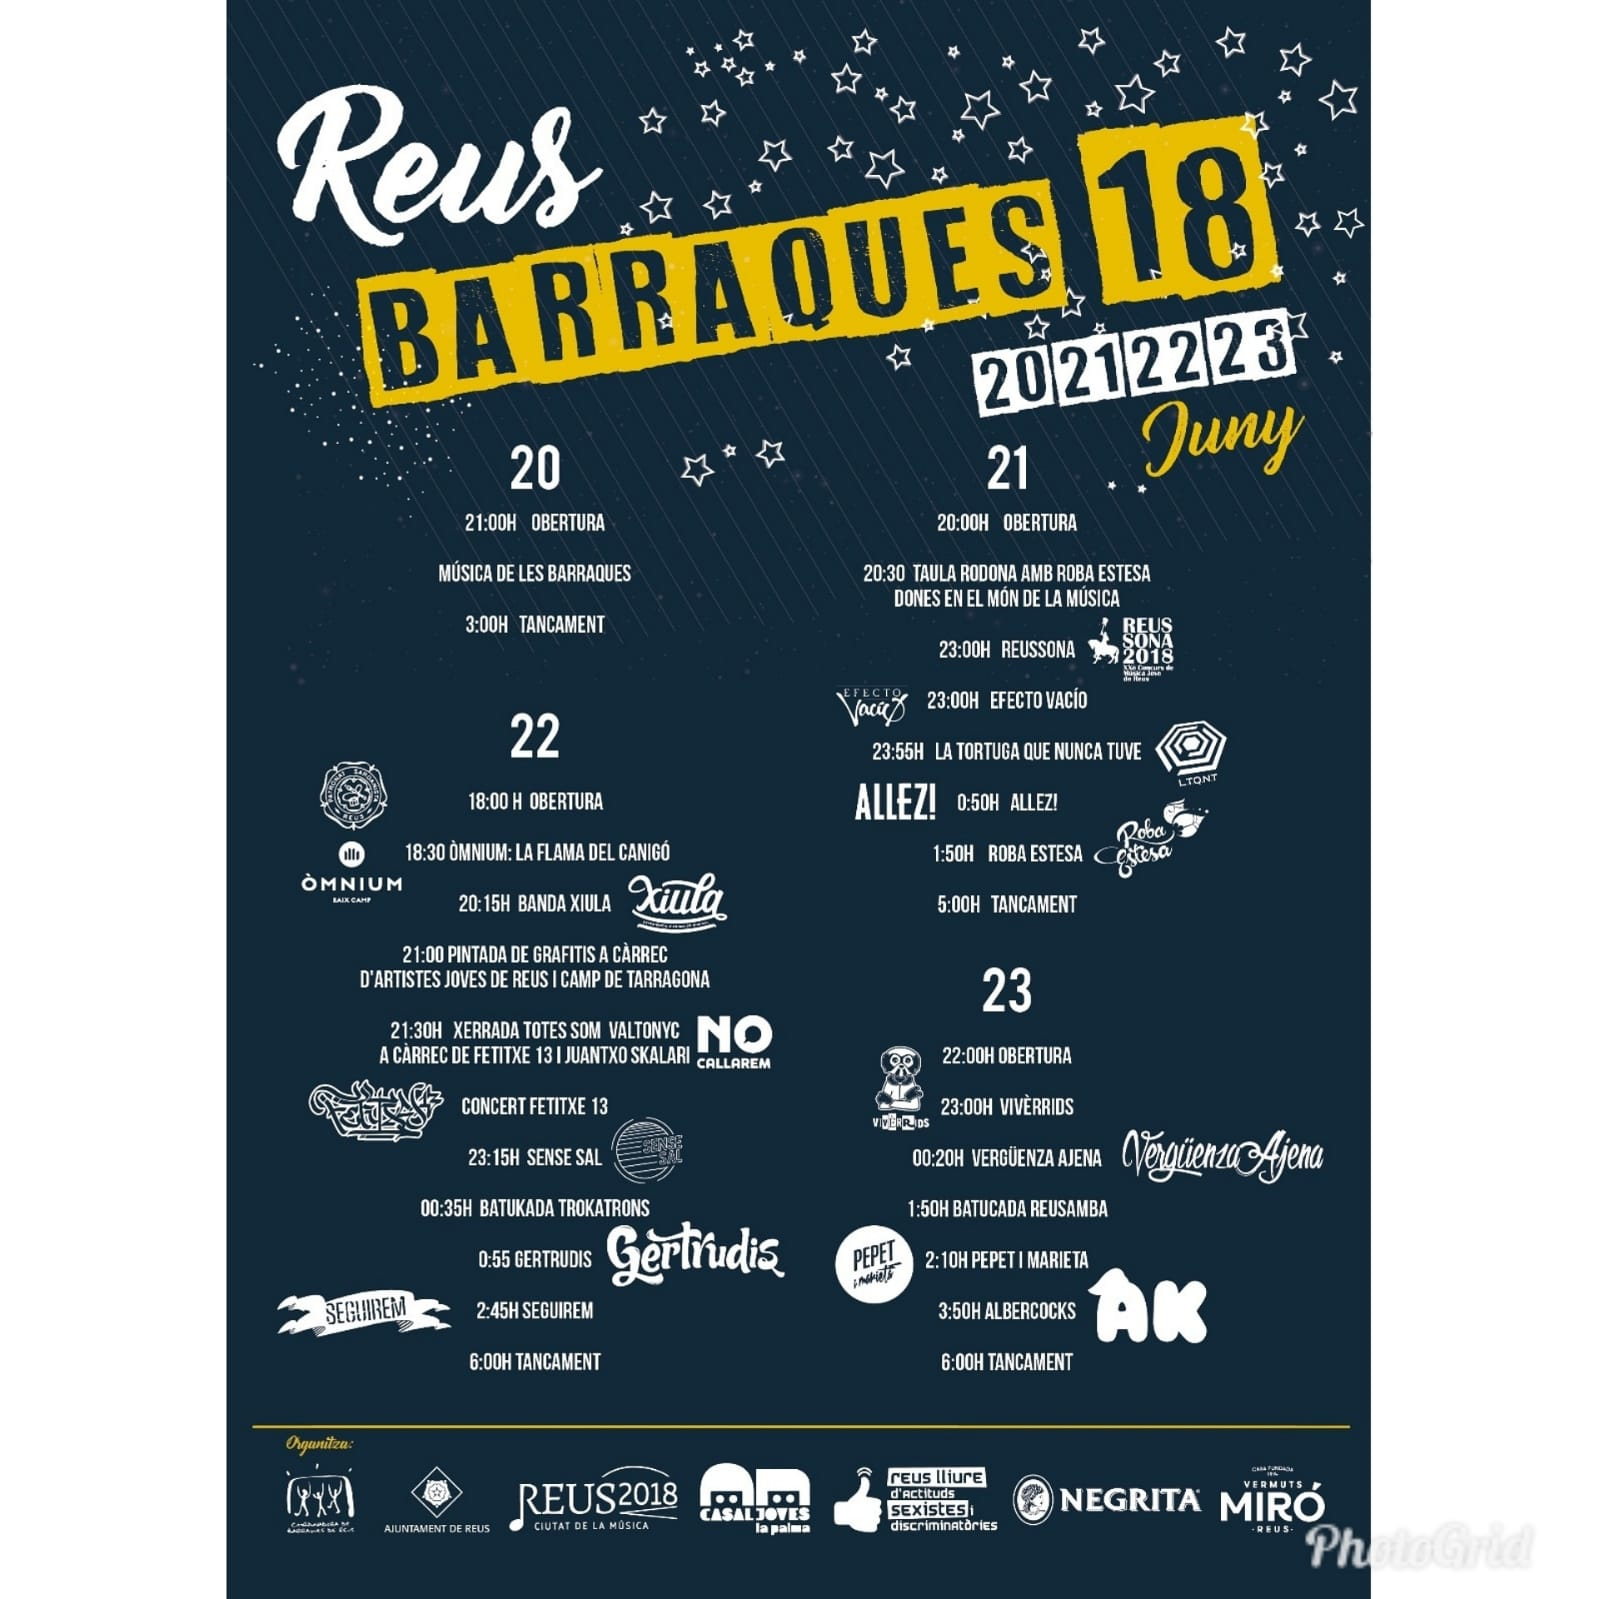 Barraques de Festa Major 2018